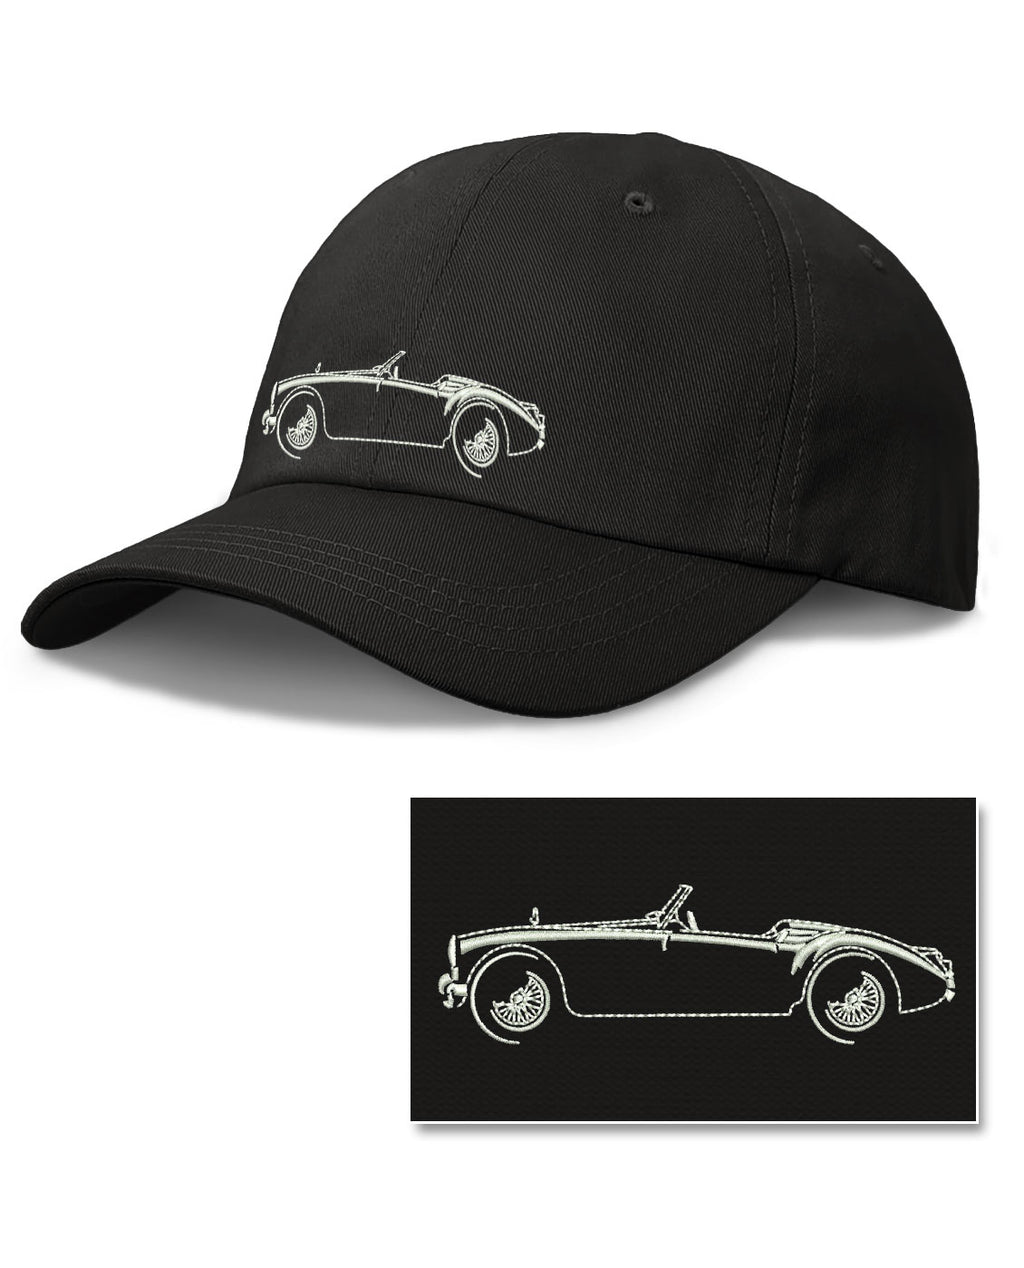 MG MGA Convertible Baseball Cap for Men & Women